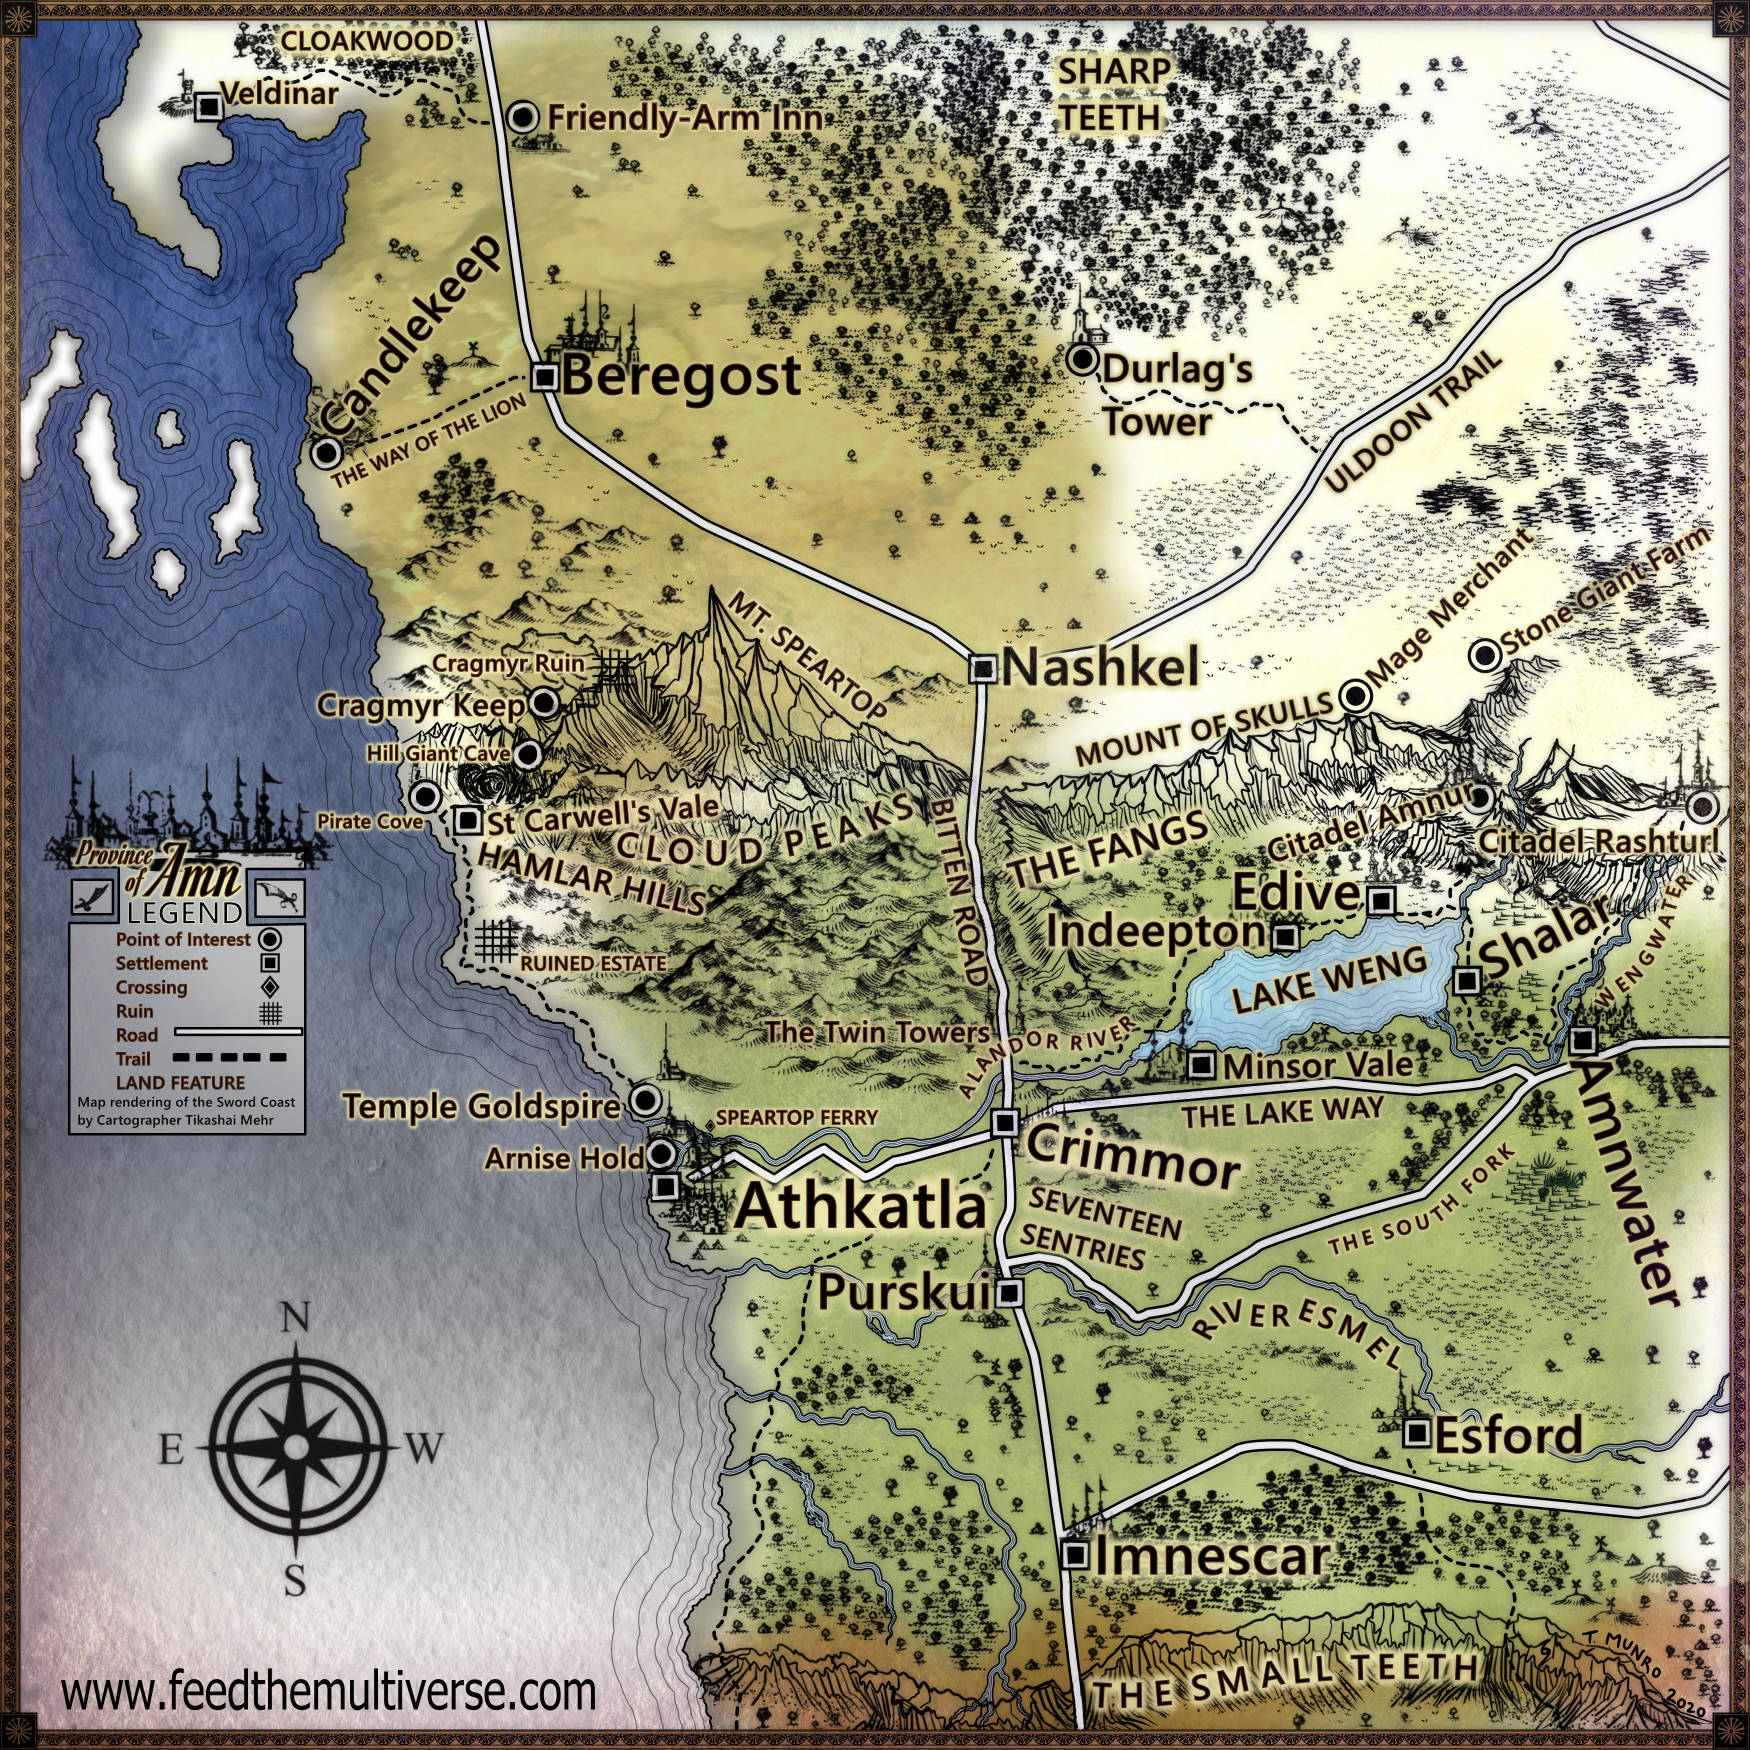 Sword coast province of Amn map from Candlekeep, Beregost, to the City of Keys, Athkatla, Faerun Dungeons and Dragons 5e next setting map